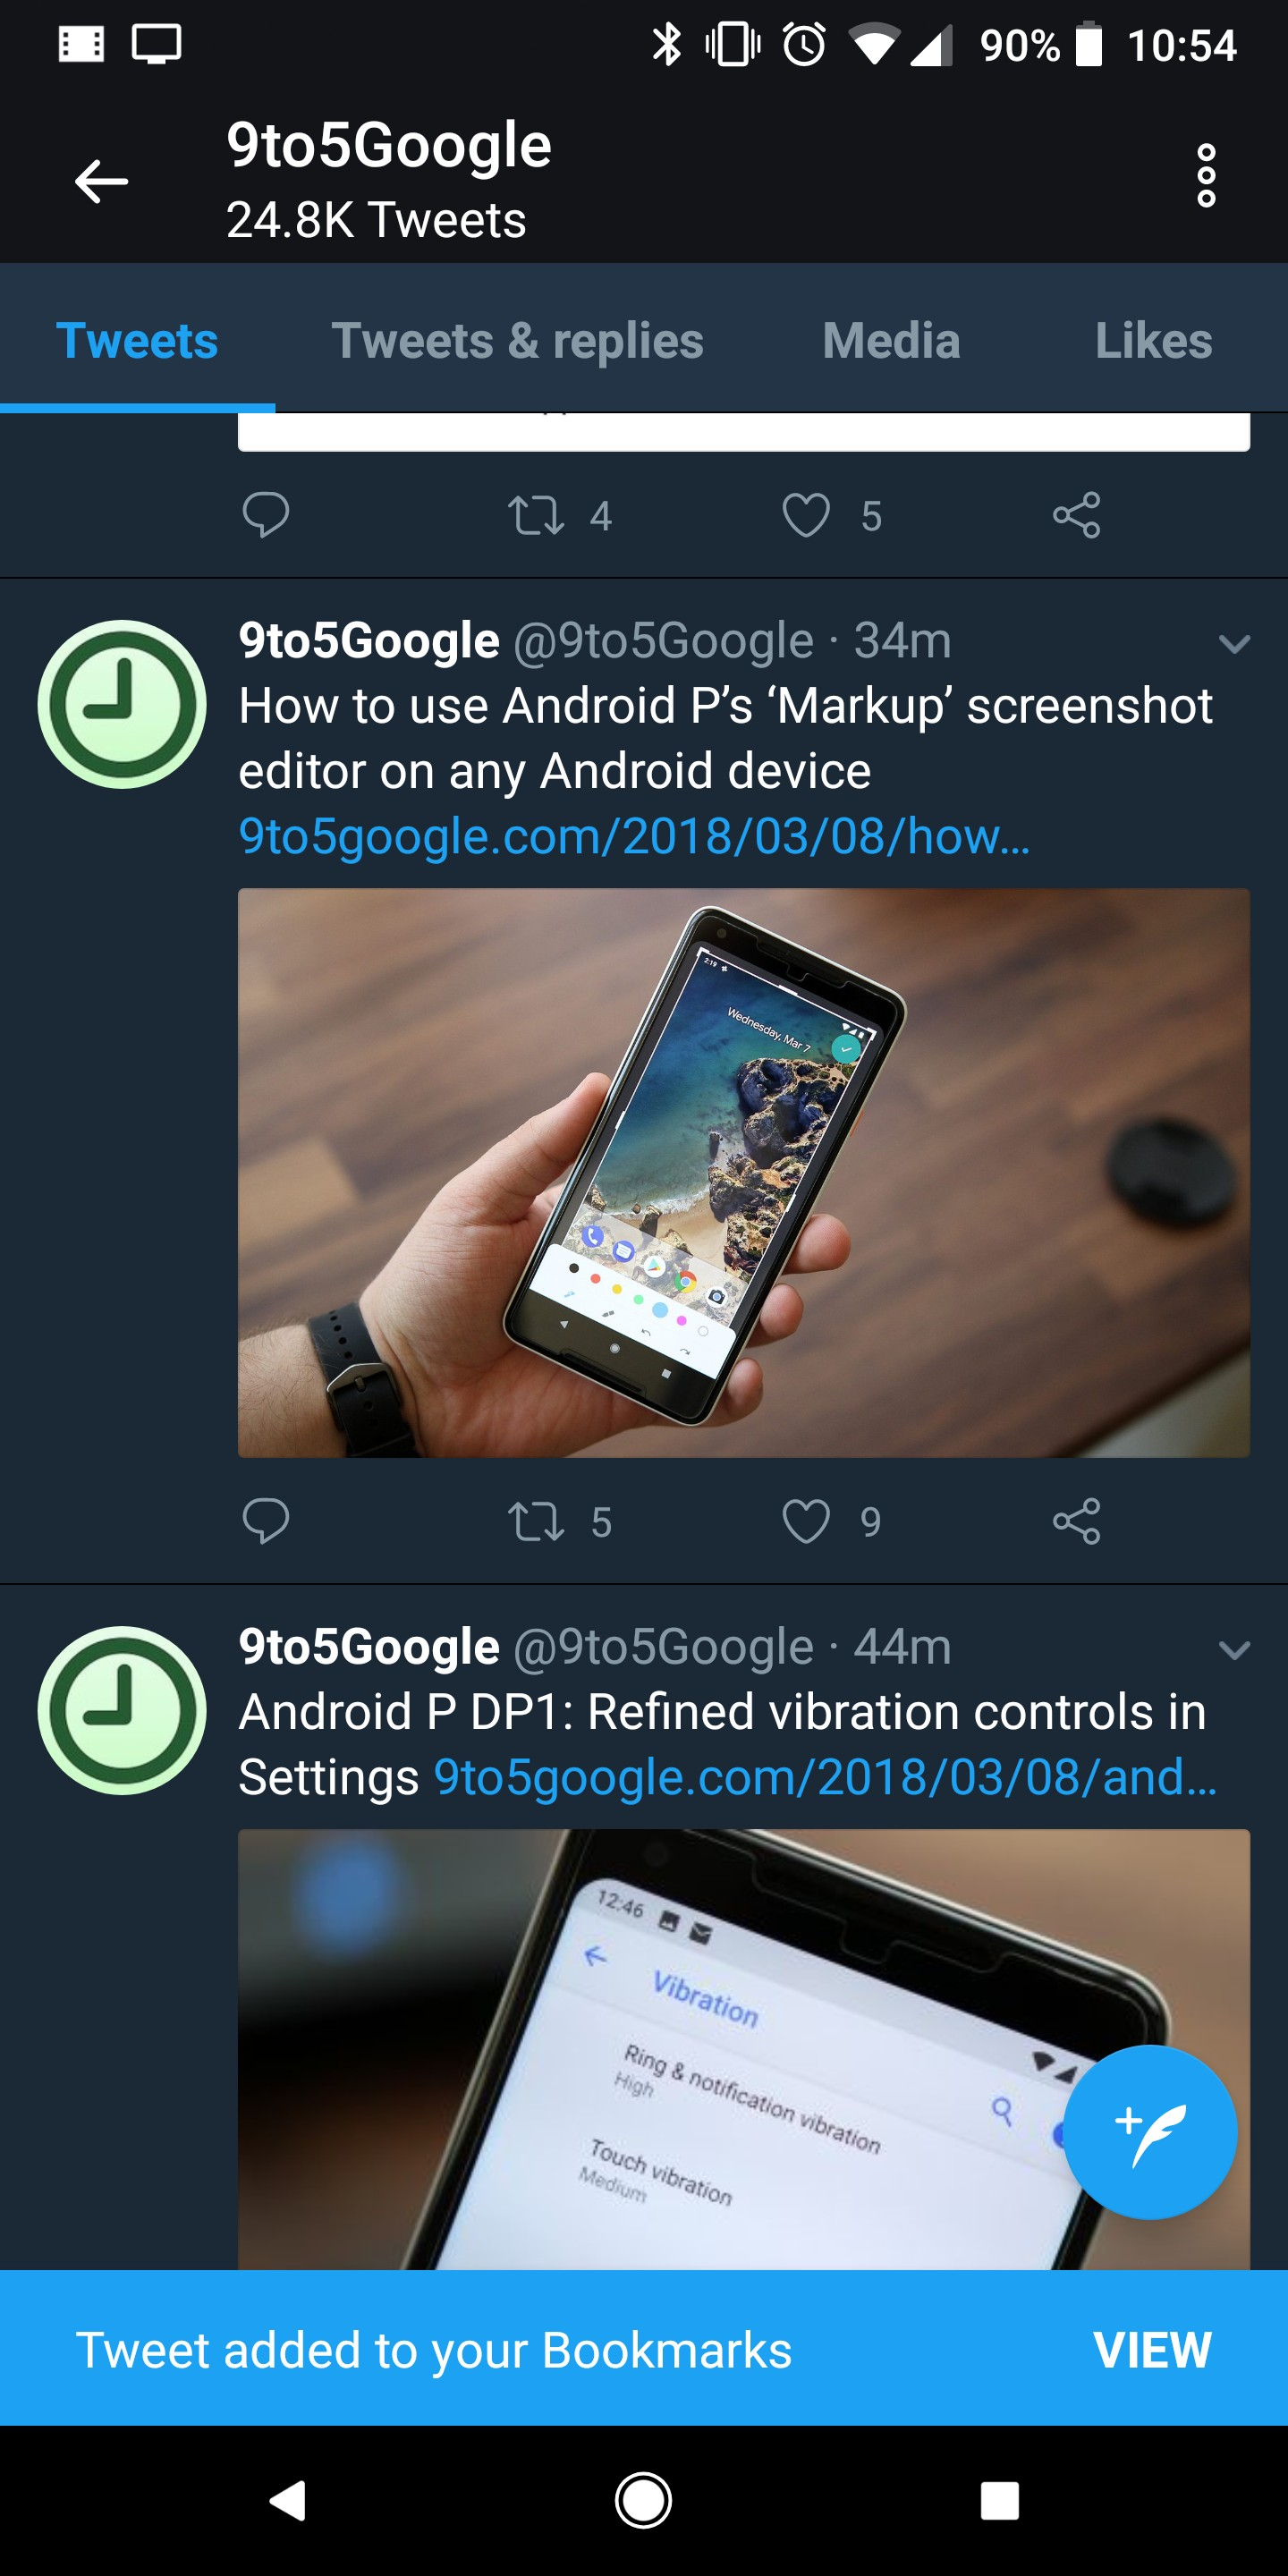 How to use Twitter bookmarks on Android - 9to5Google